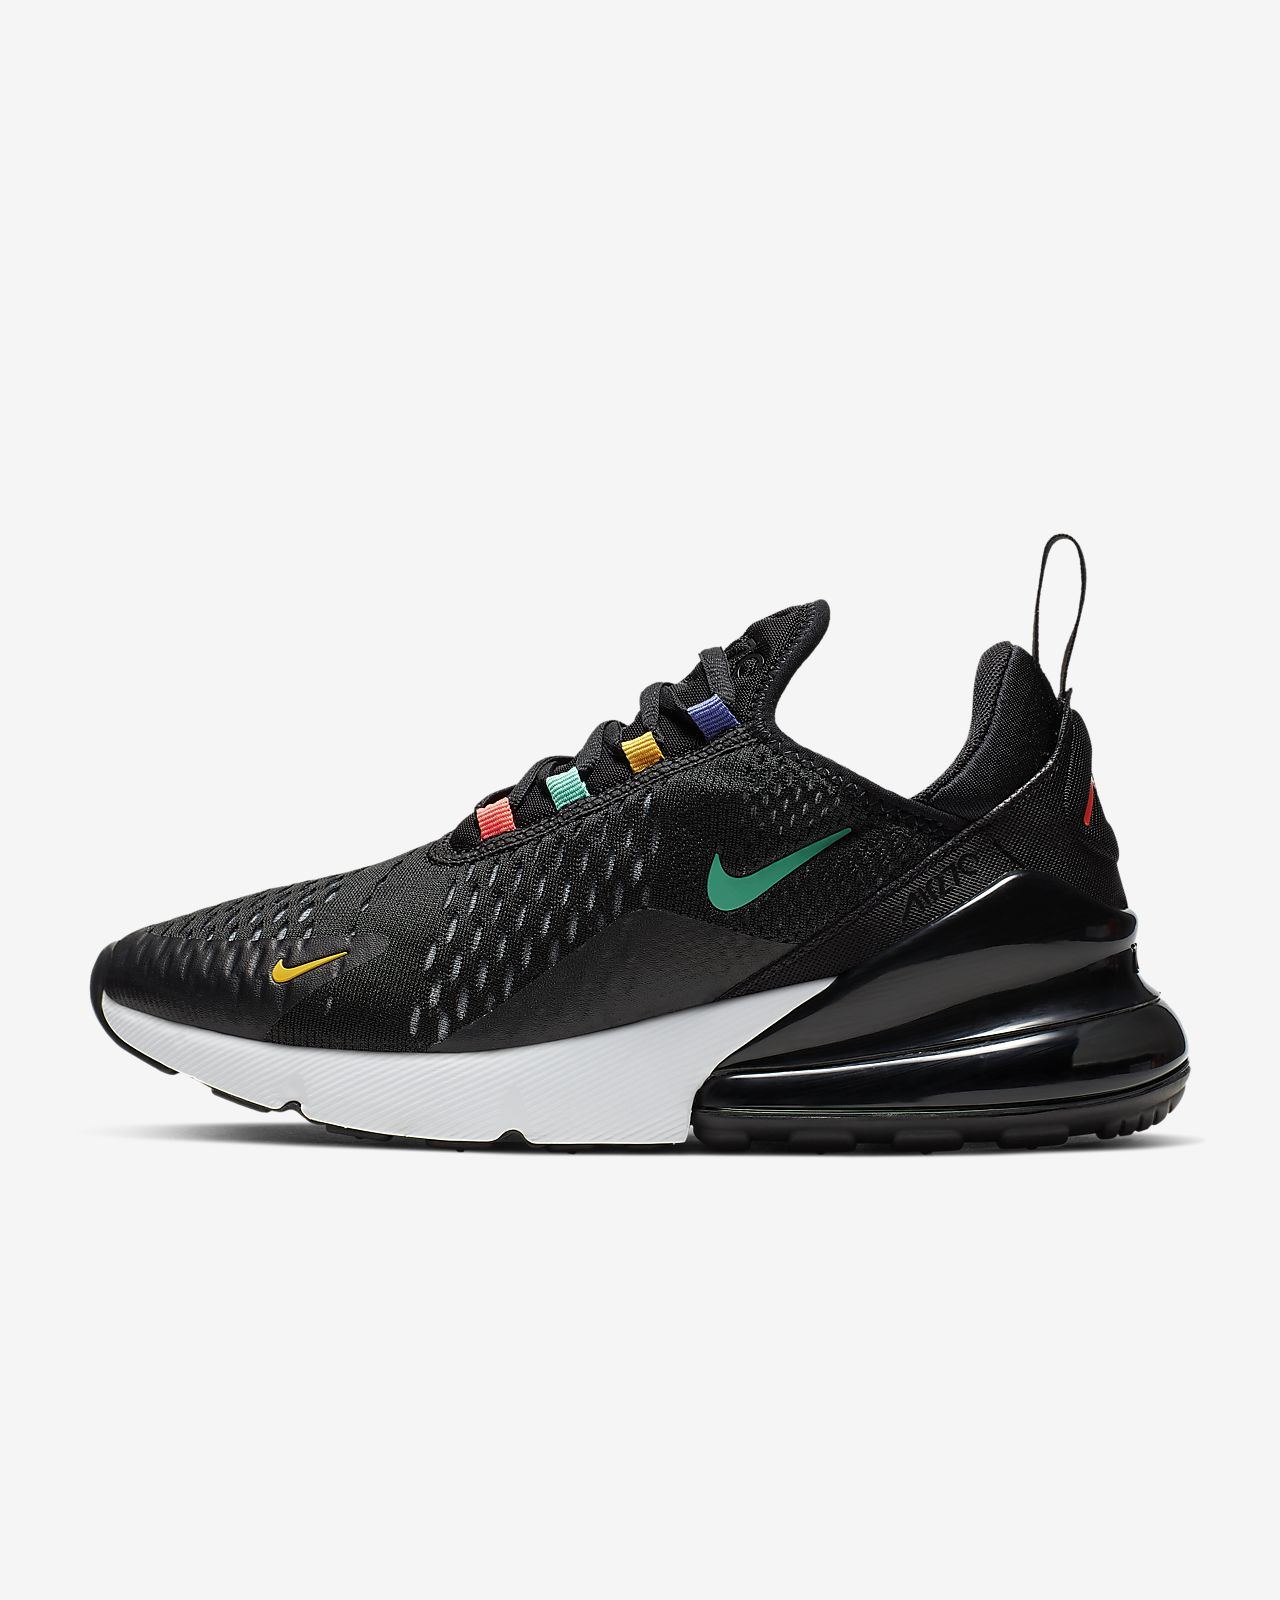 Nike 270 Air Max Shoe Women's hdrxsQCotB